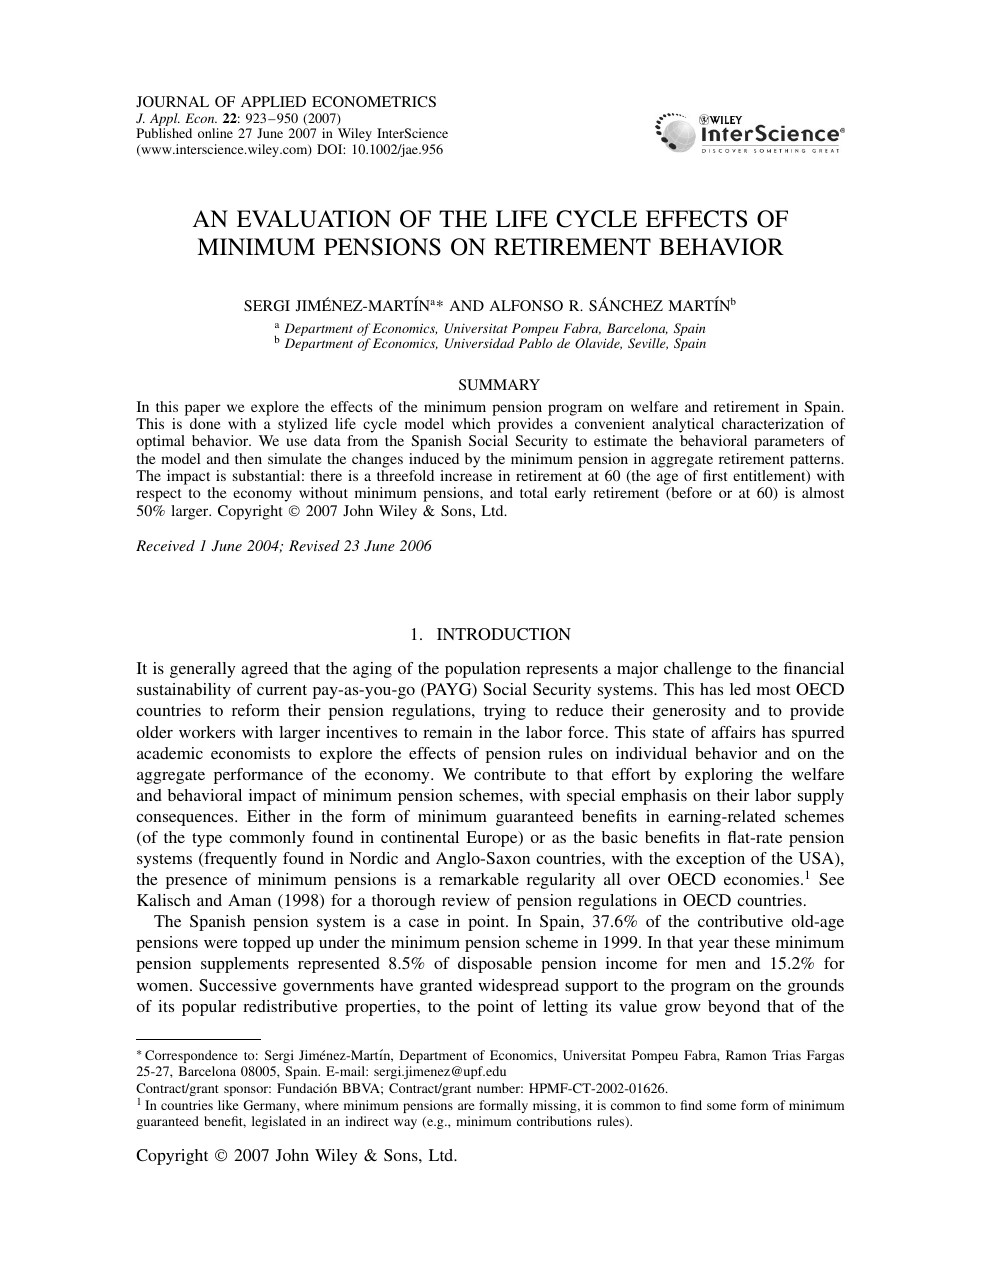 Connecticut Department Of Labor Unique An Evaluation Of the Life Cycle Effects Of Minimum Pensions